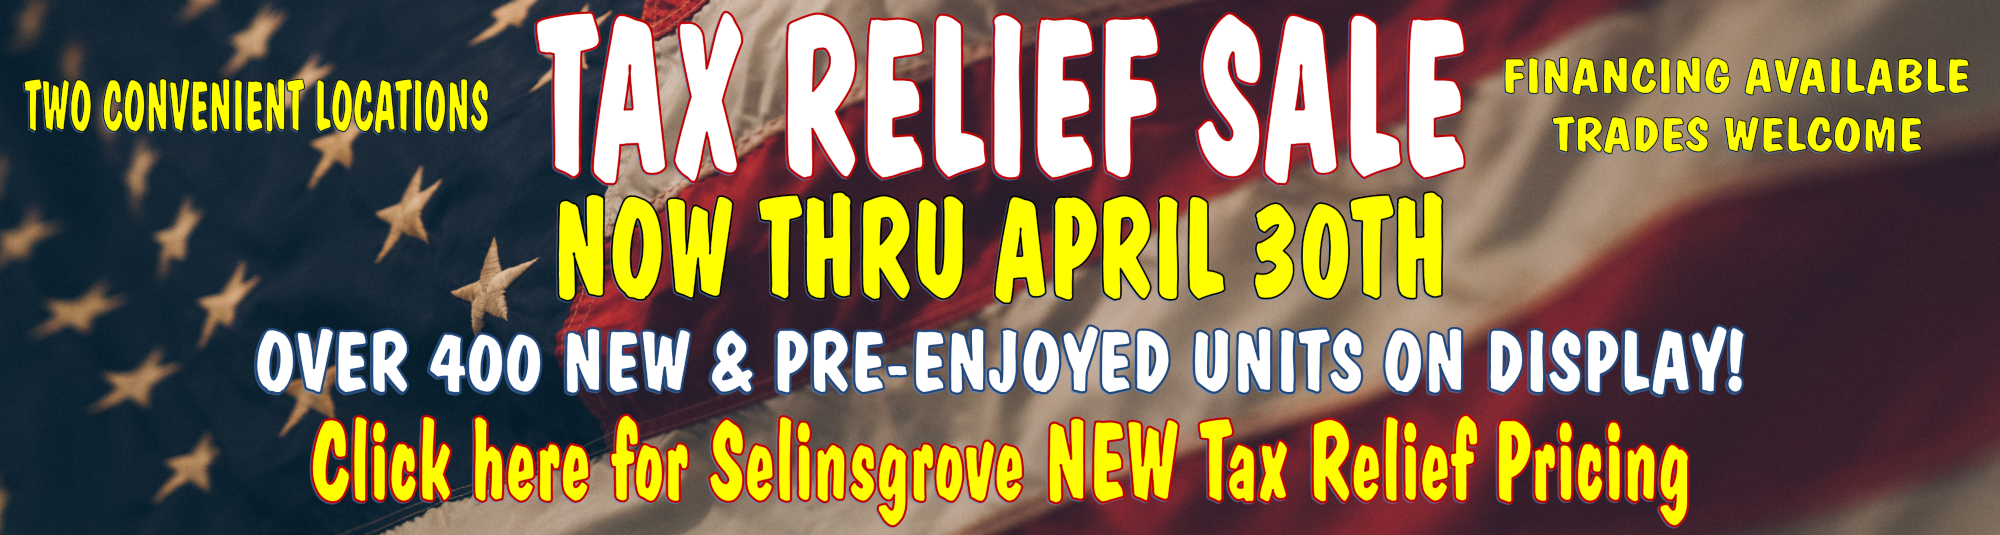 Tax Relief Sale